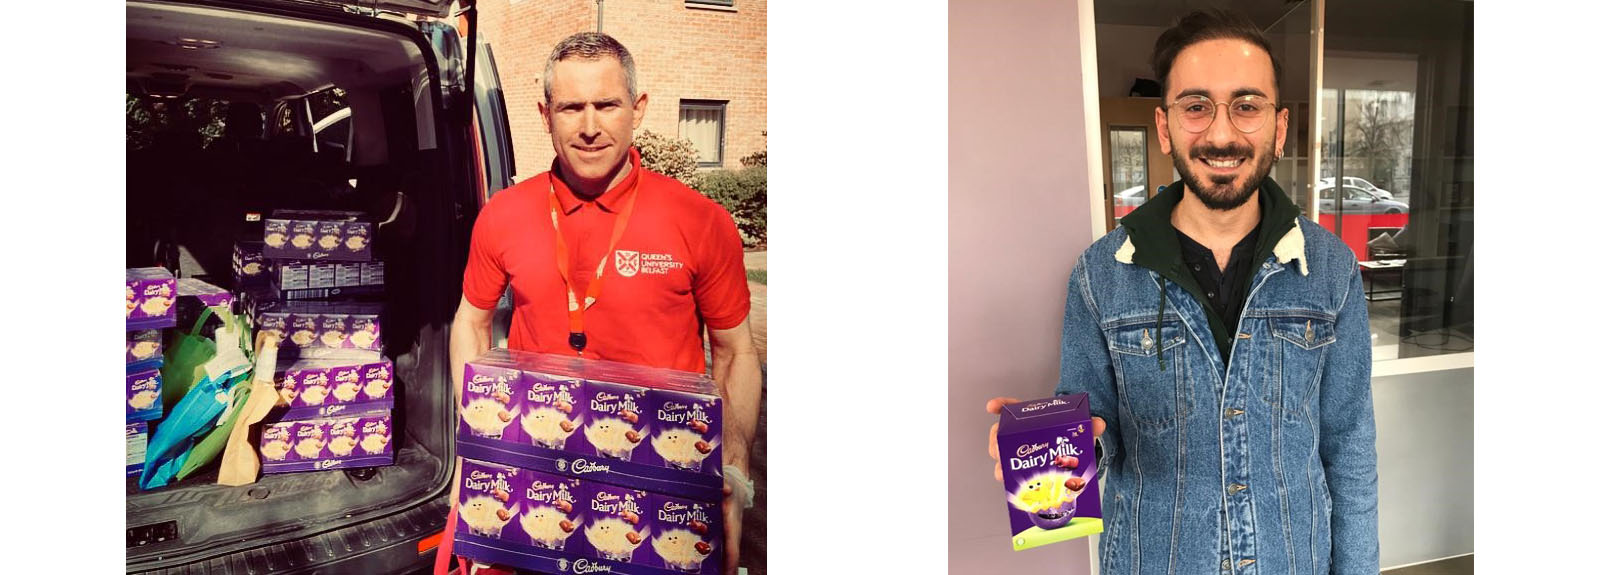 Staff buying Easter eggs and a student with an Easter egg